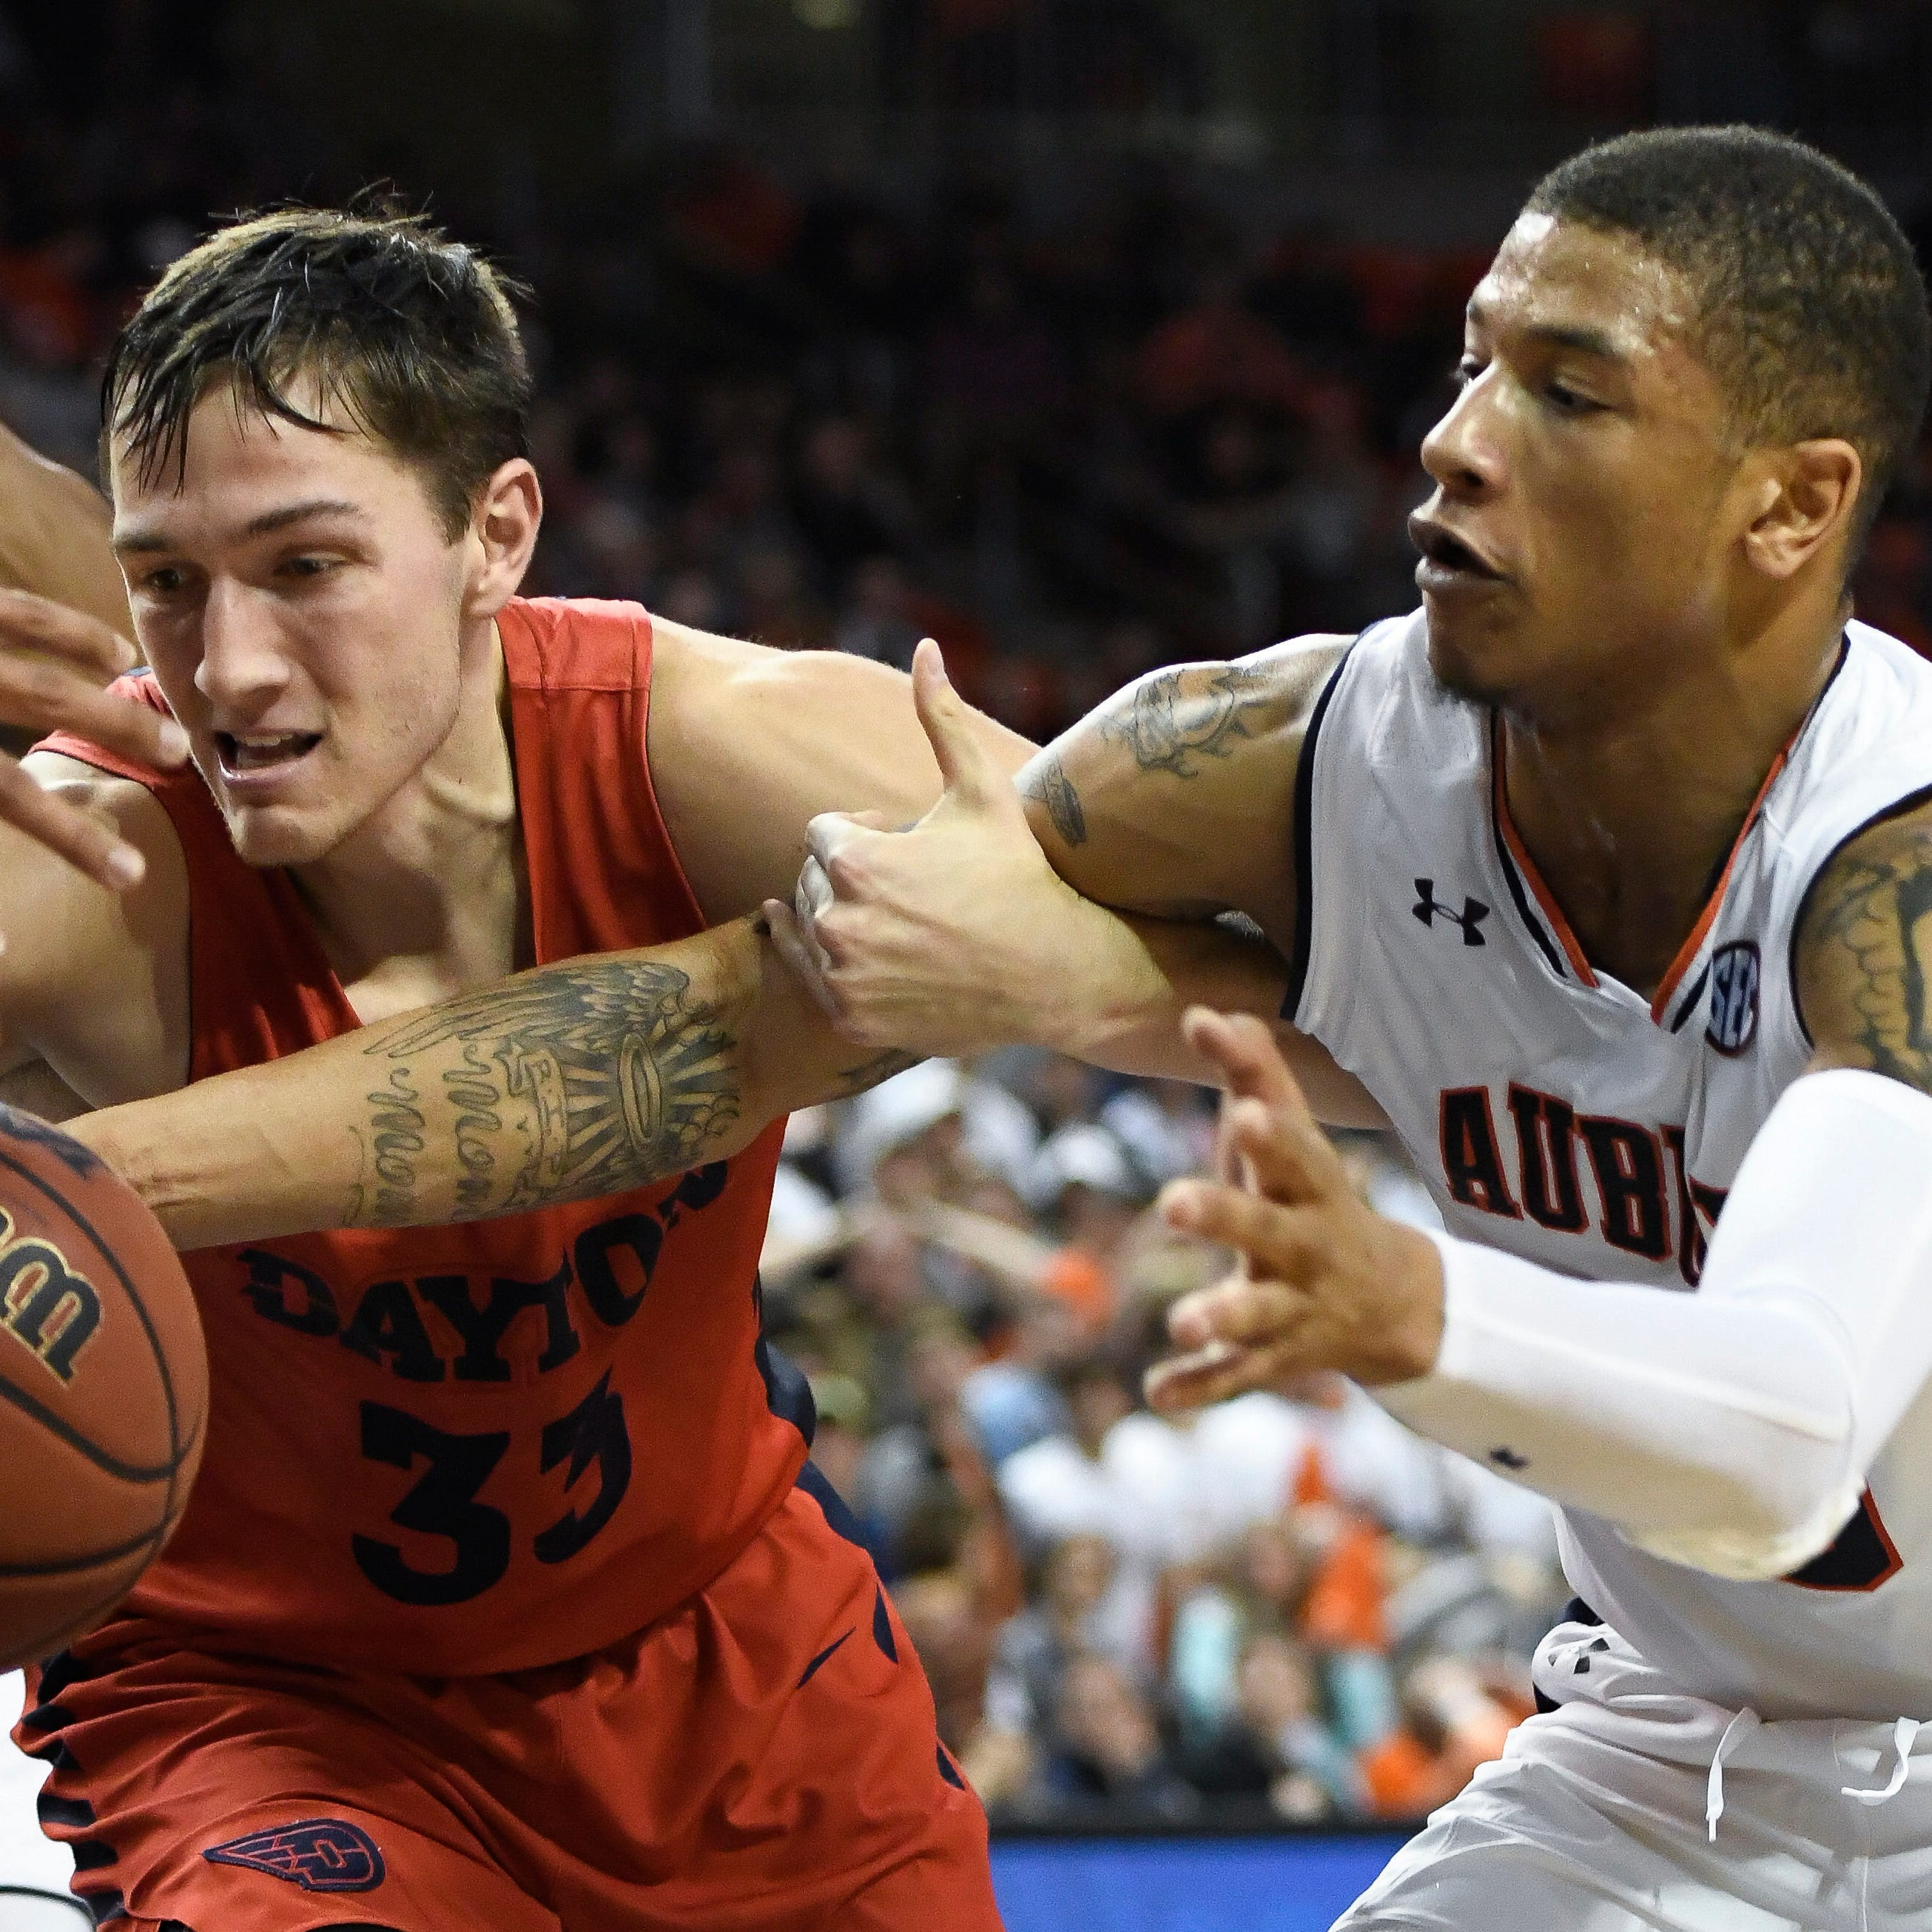 Where I ranked Auburn men's basketball in the AP Top 25 Poll after a two-win week